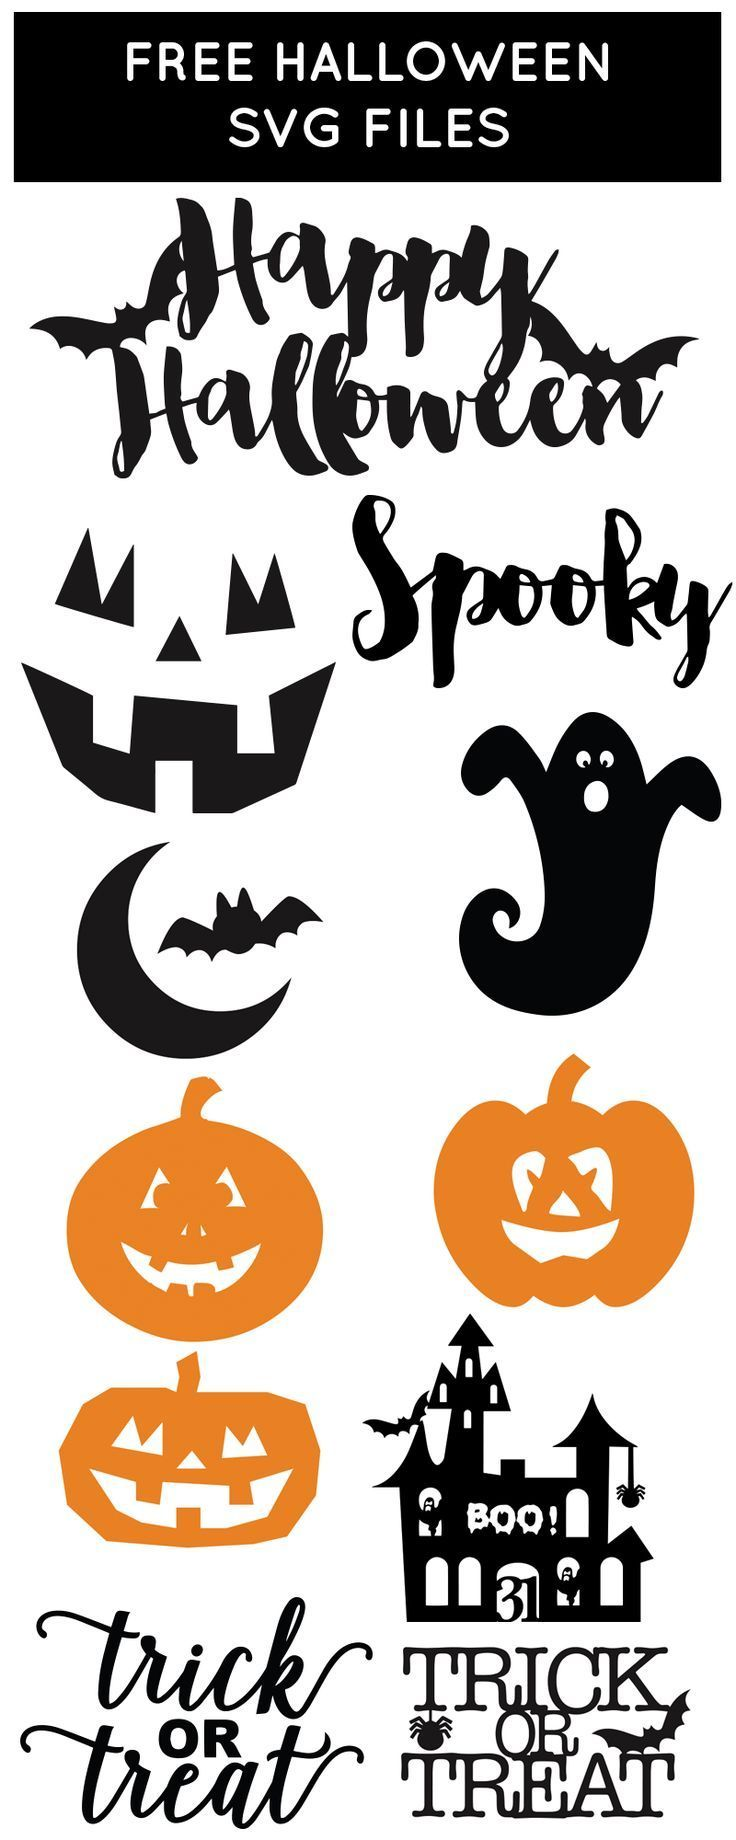 Free SVG Files for Halloween from @chicfetti::